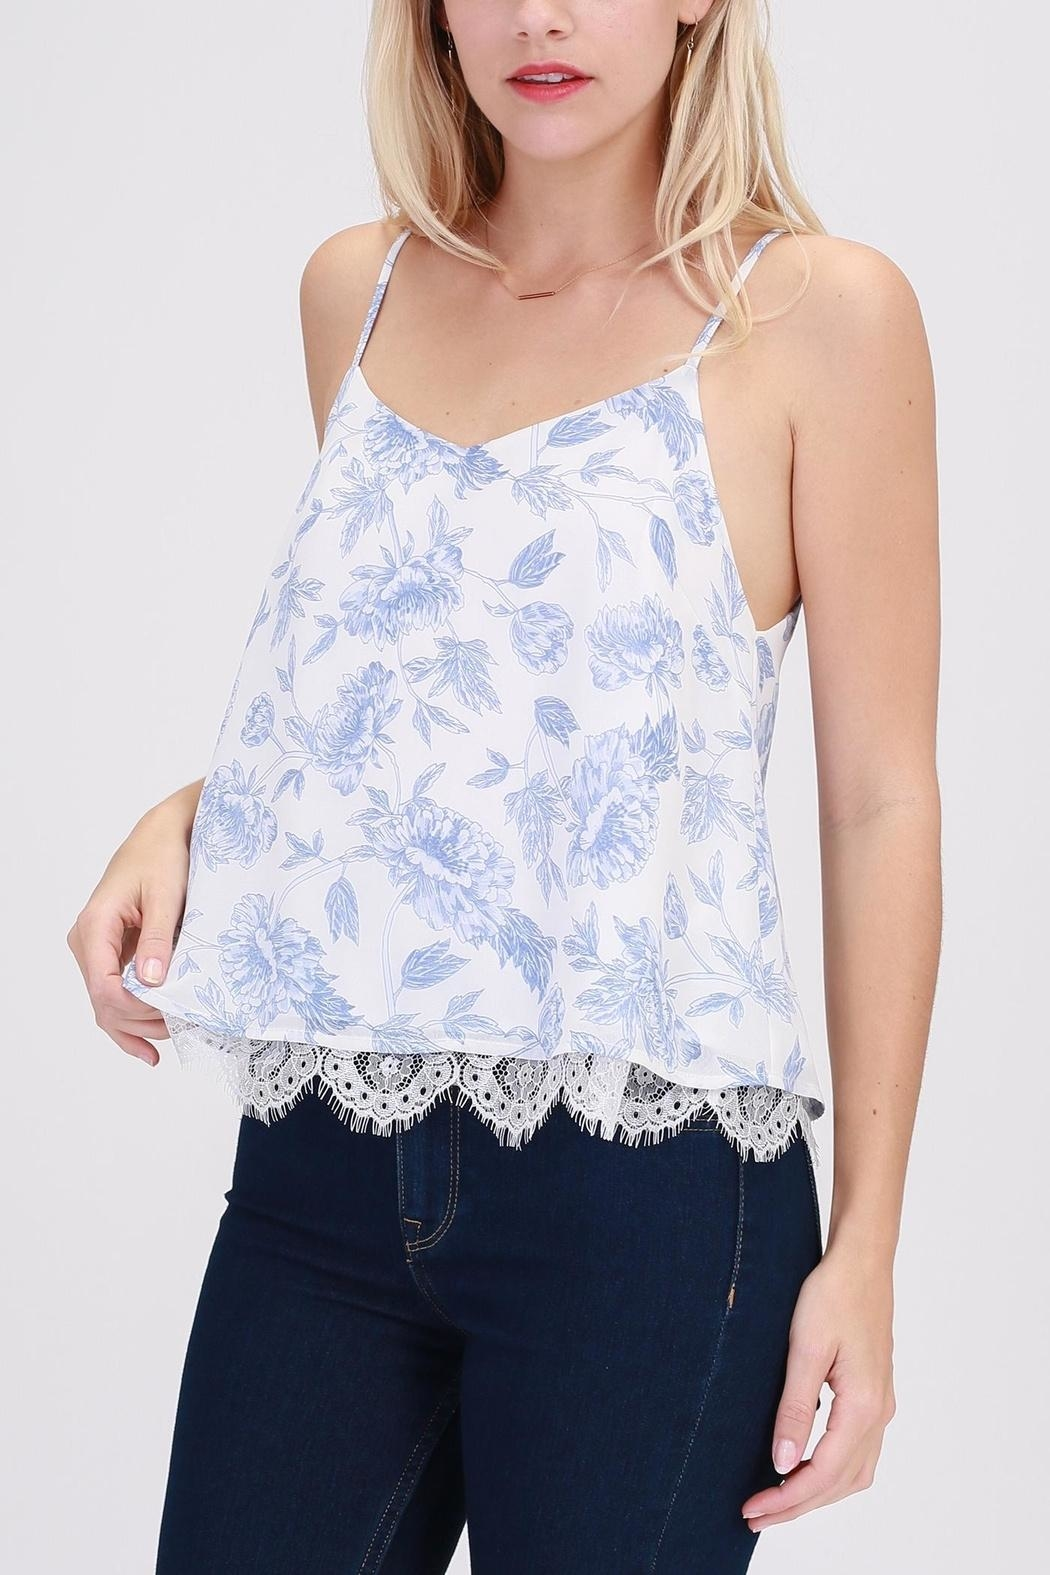 HYFVE Blue-Floral Perfection Top - Front Cropped Image